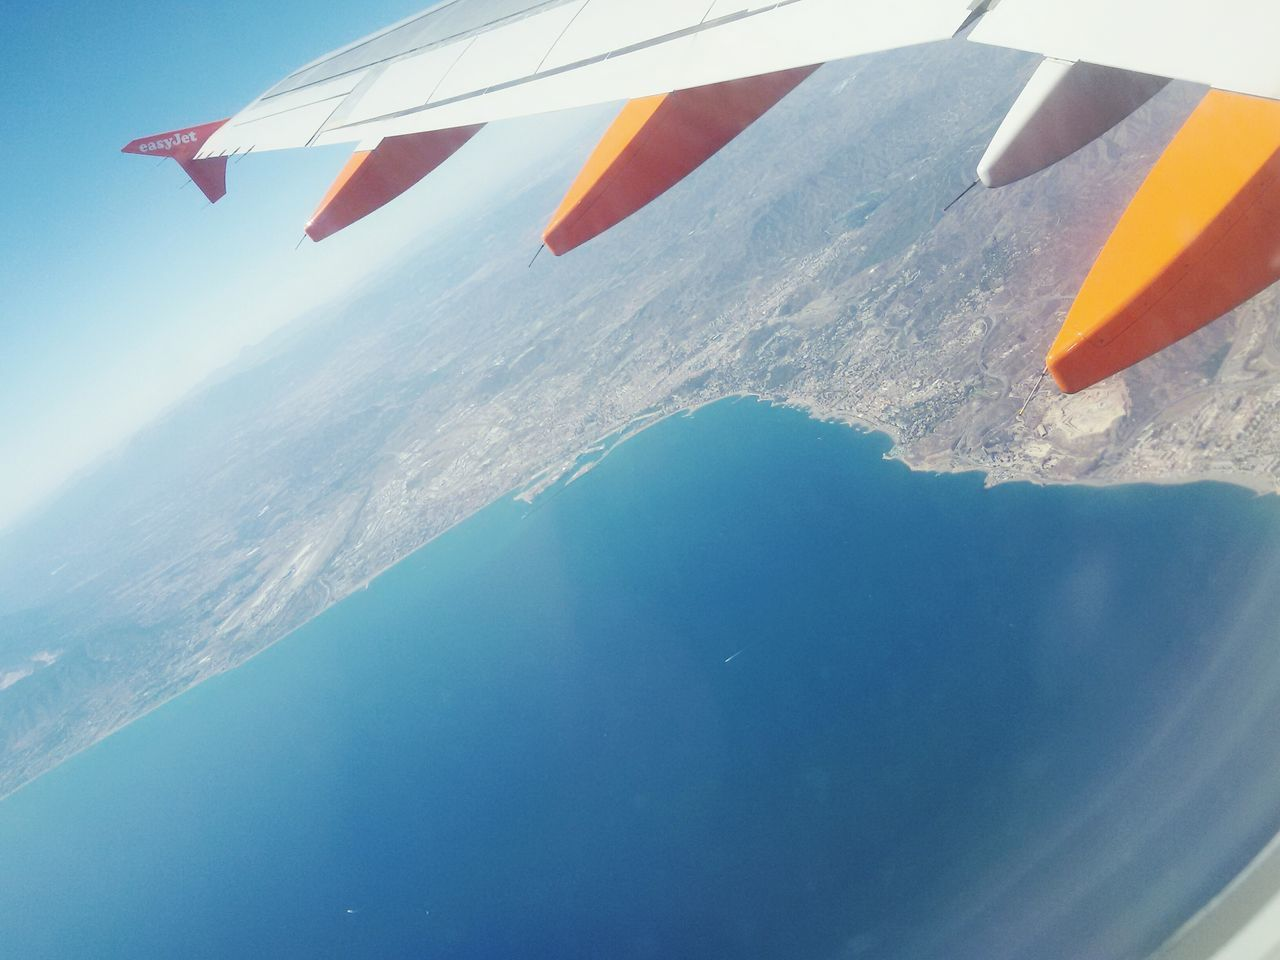 Fly Airplane Sky Day Clear Sky Verano Sea Vacanza Water Outdoors